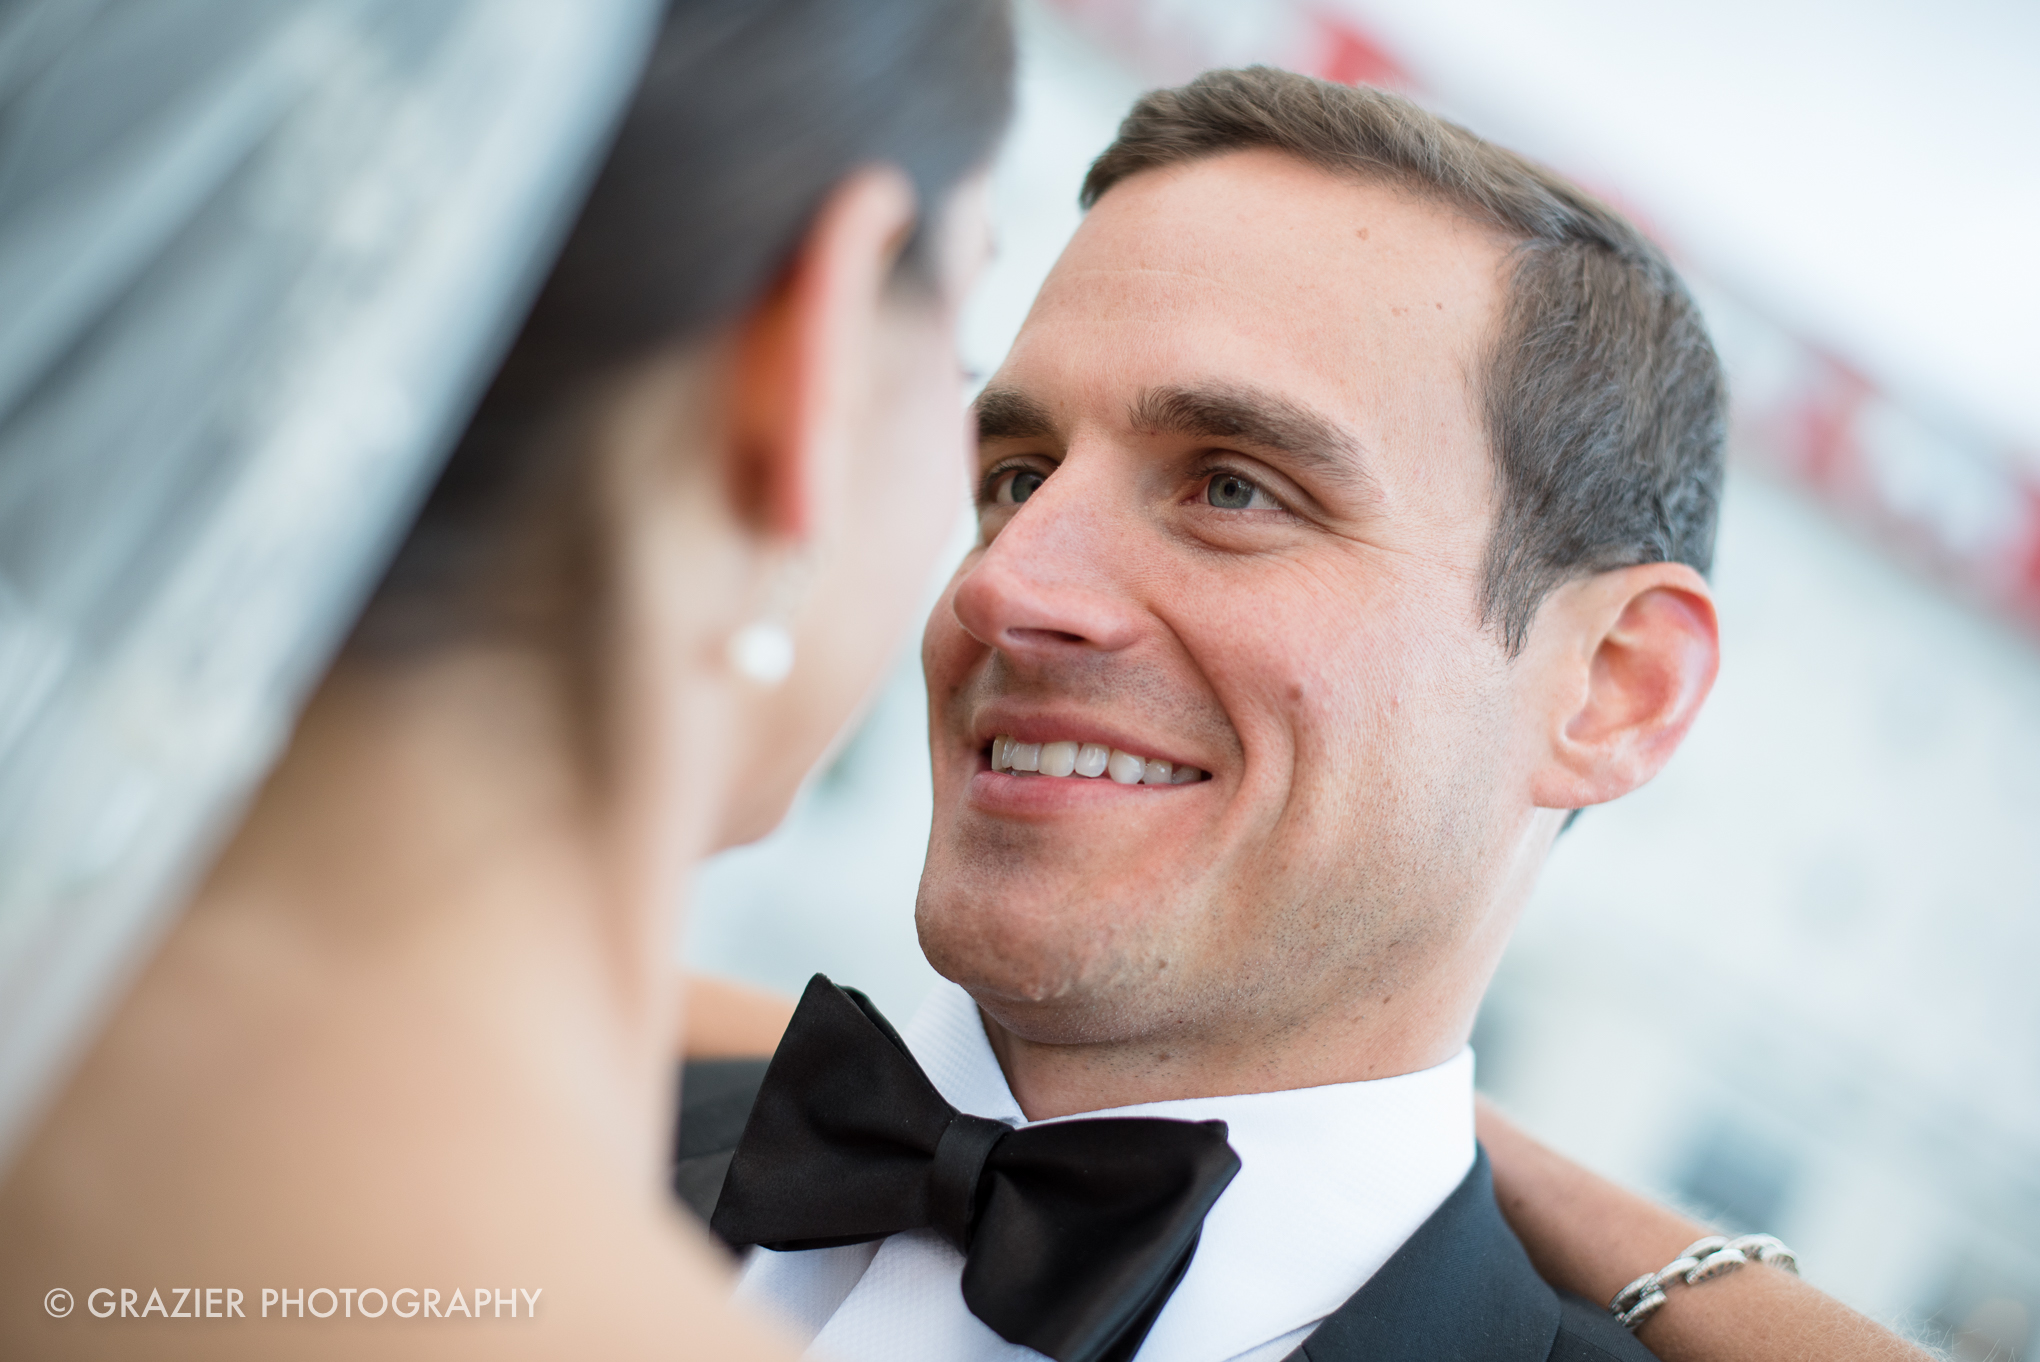 Grazier_Photography_Mount_Washington_Wedding_151017_450.jpg